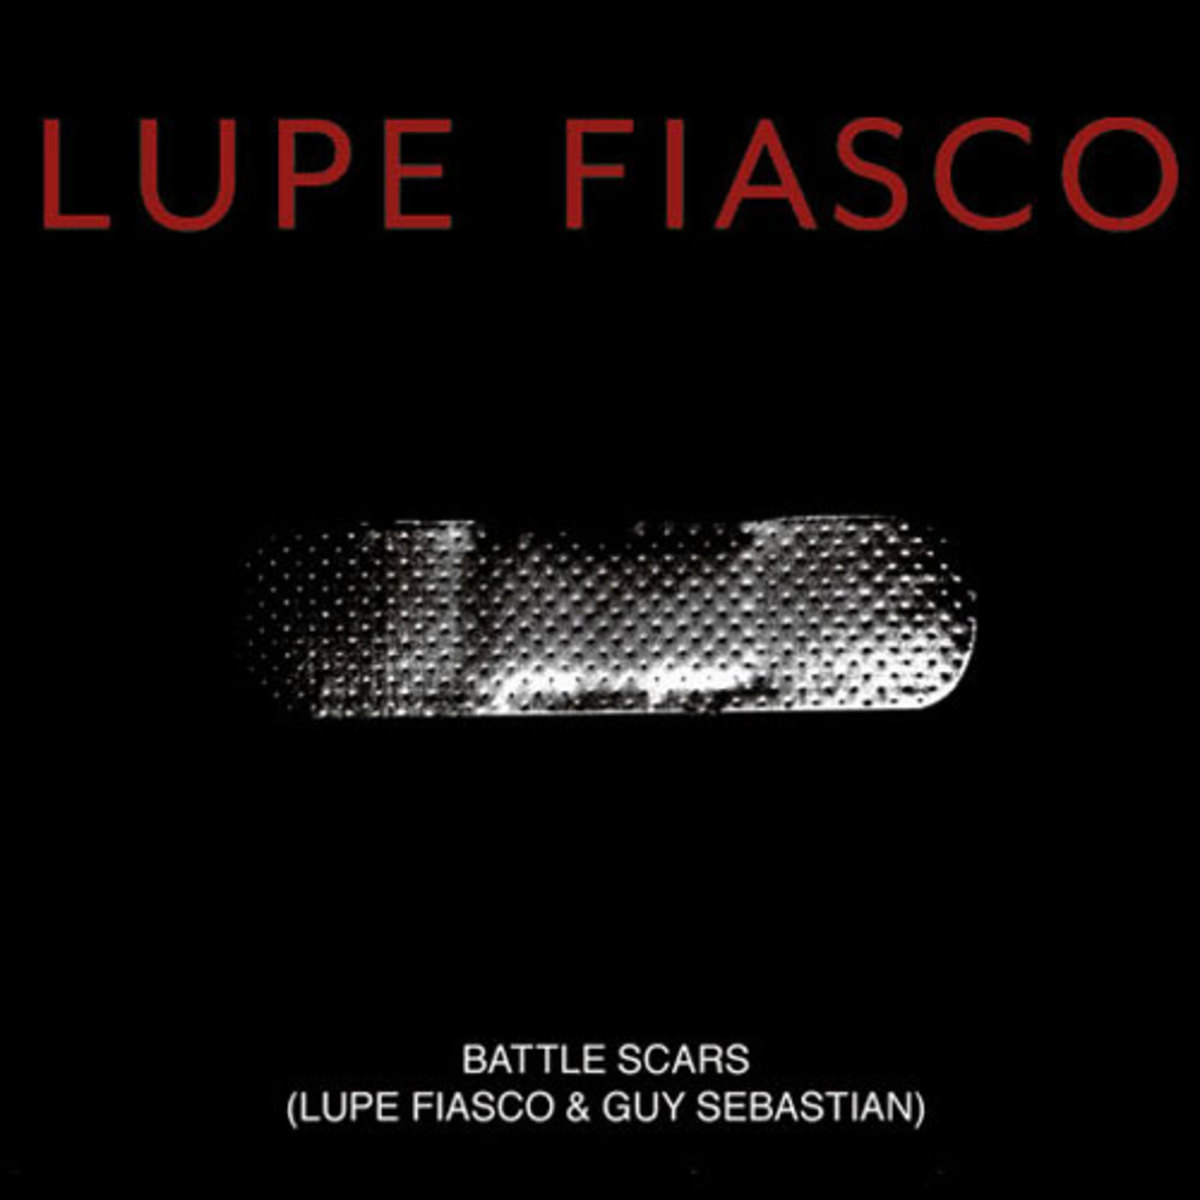 lupefiasco-battlescars.jpg